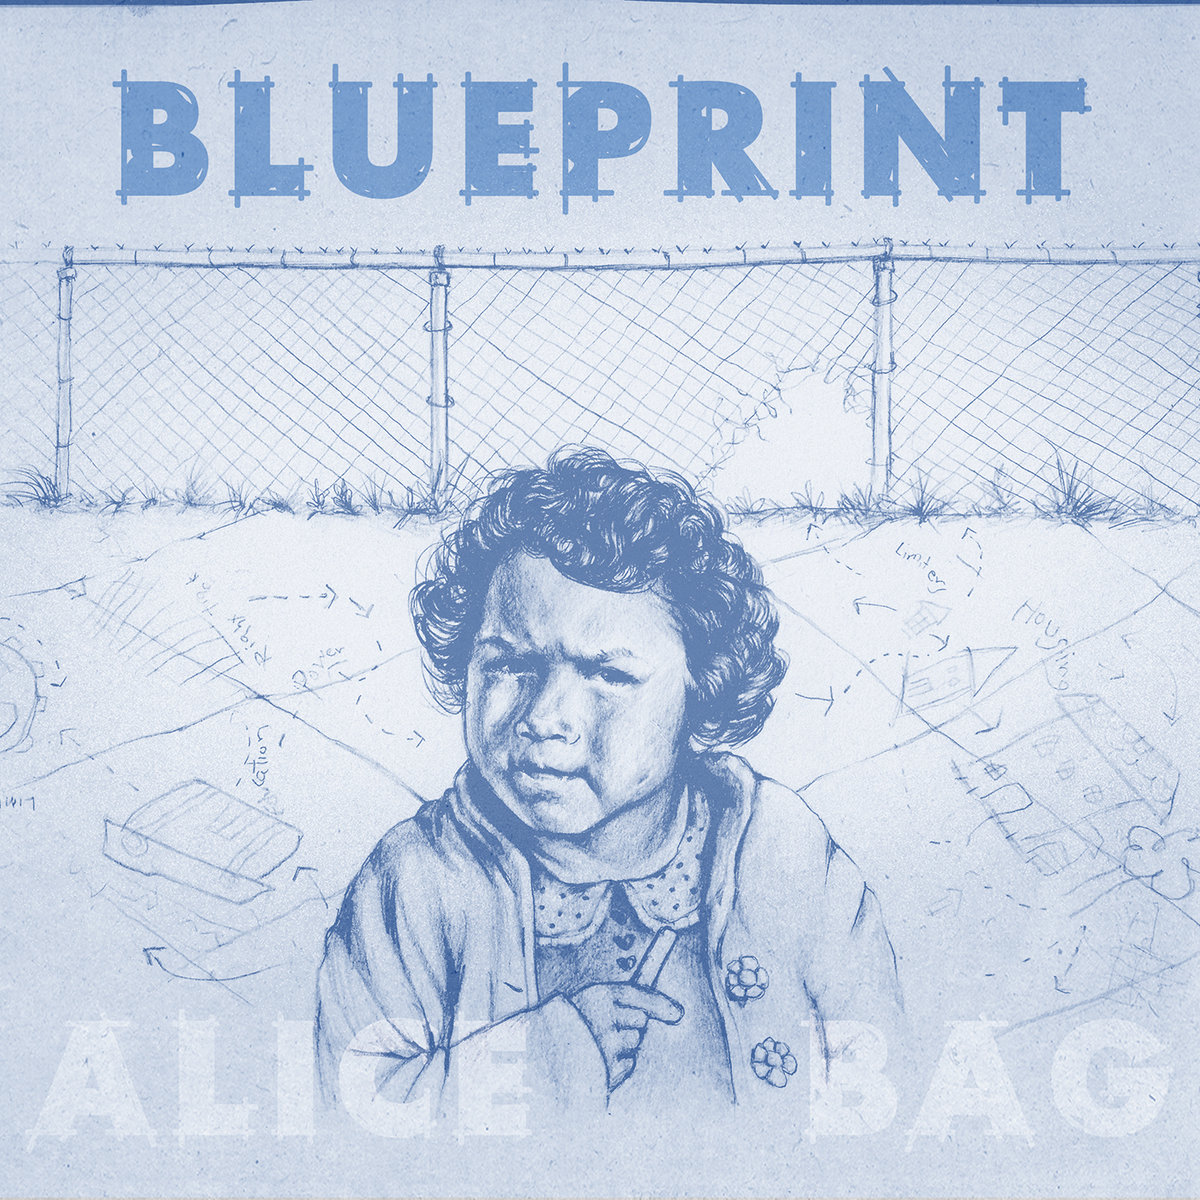 Blueprint alice bag blueprint by alice bag malvernweather Image collections